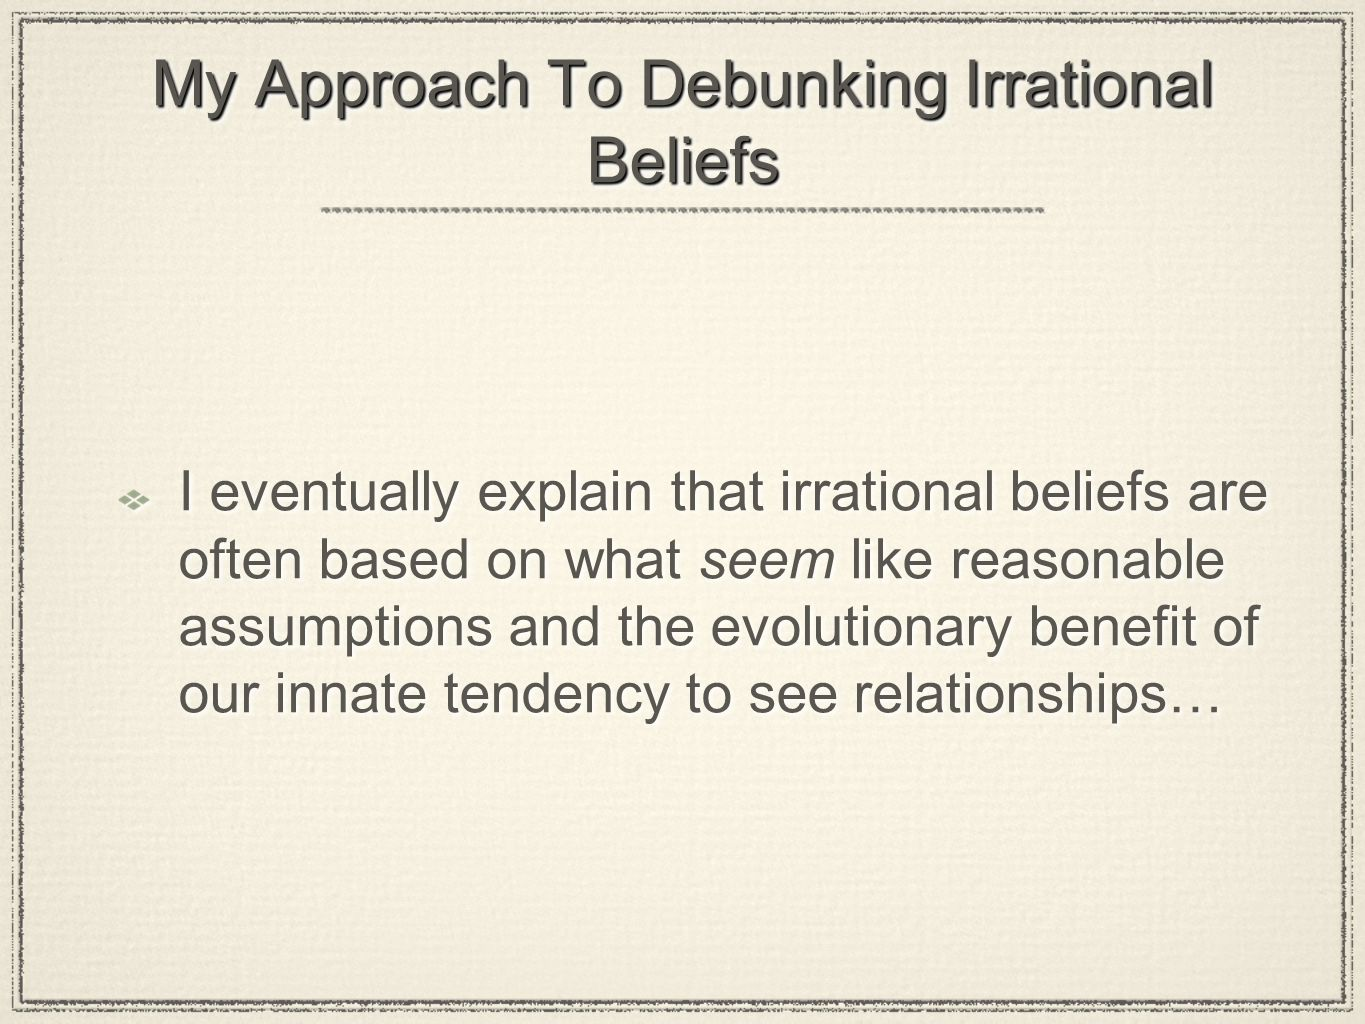 My Approach To Debunking Irrational Beliefs